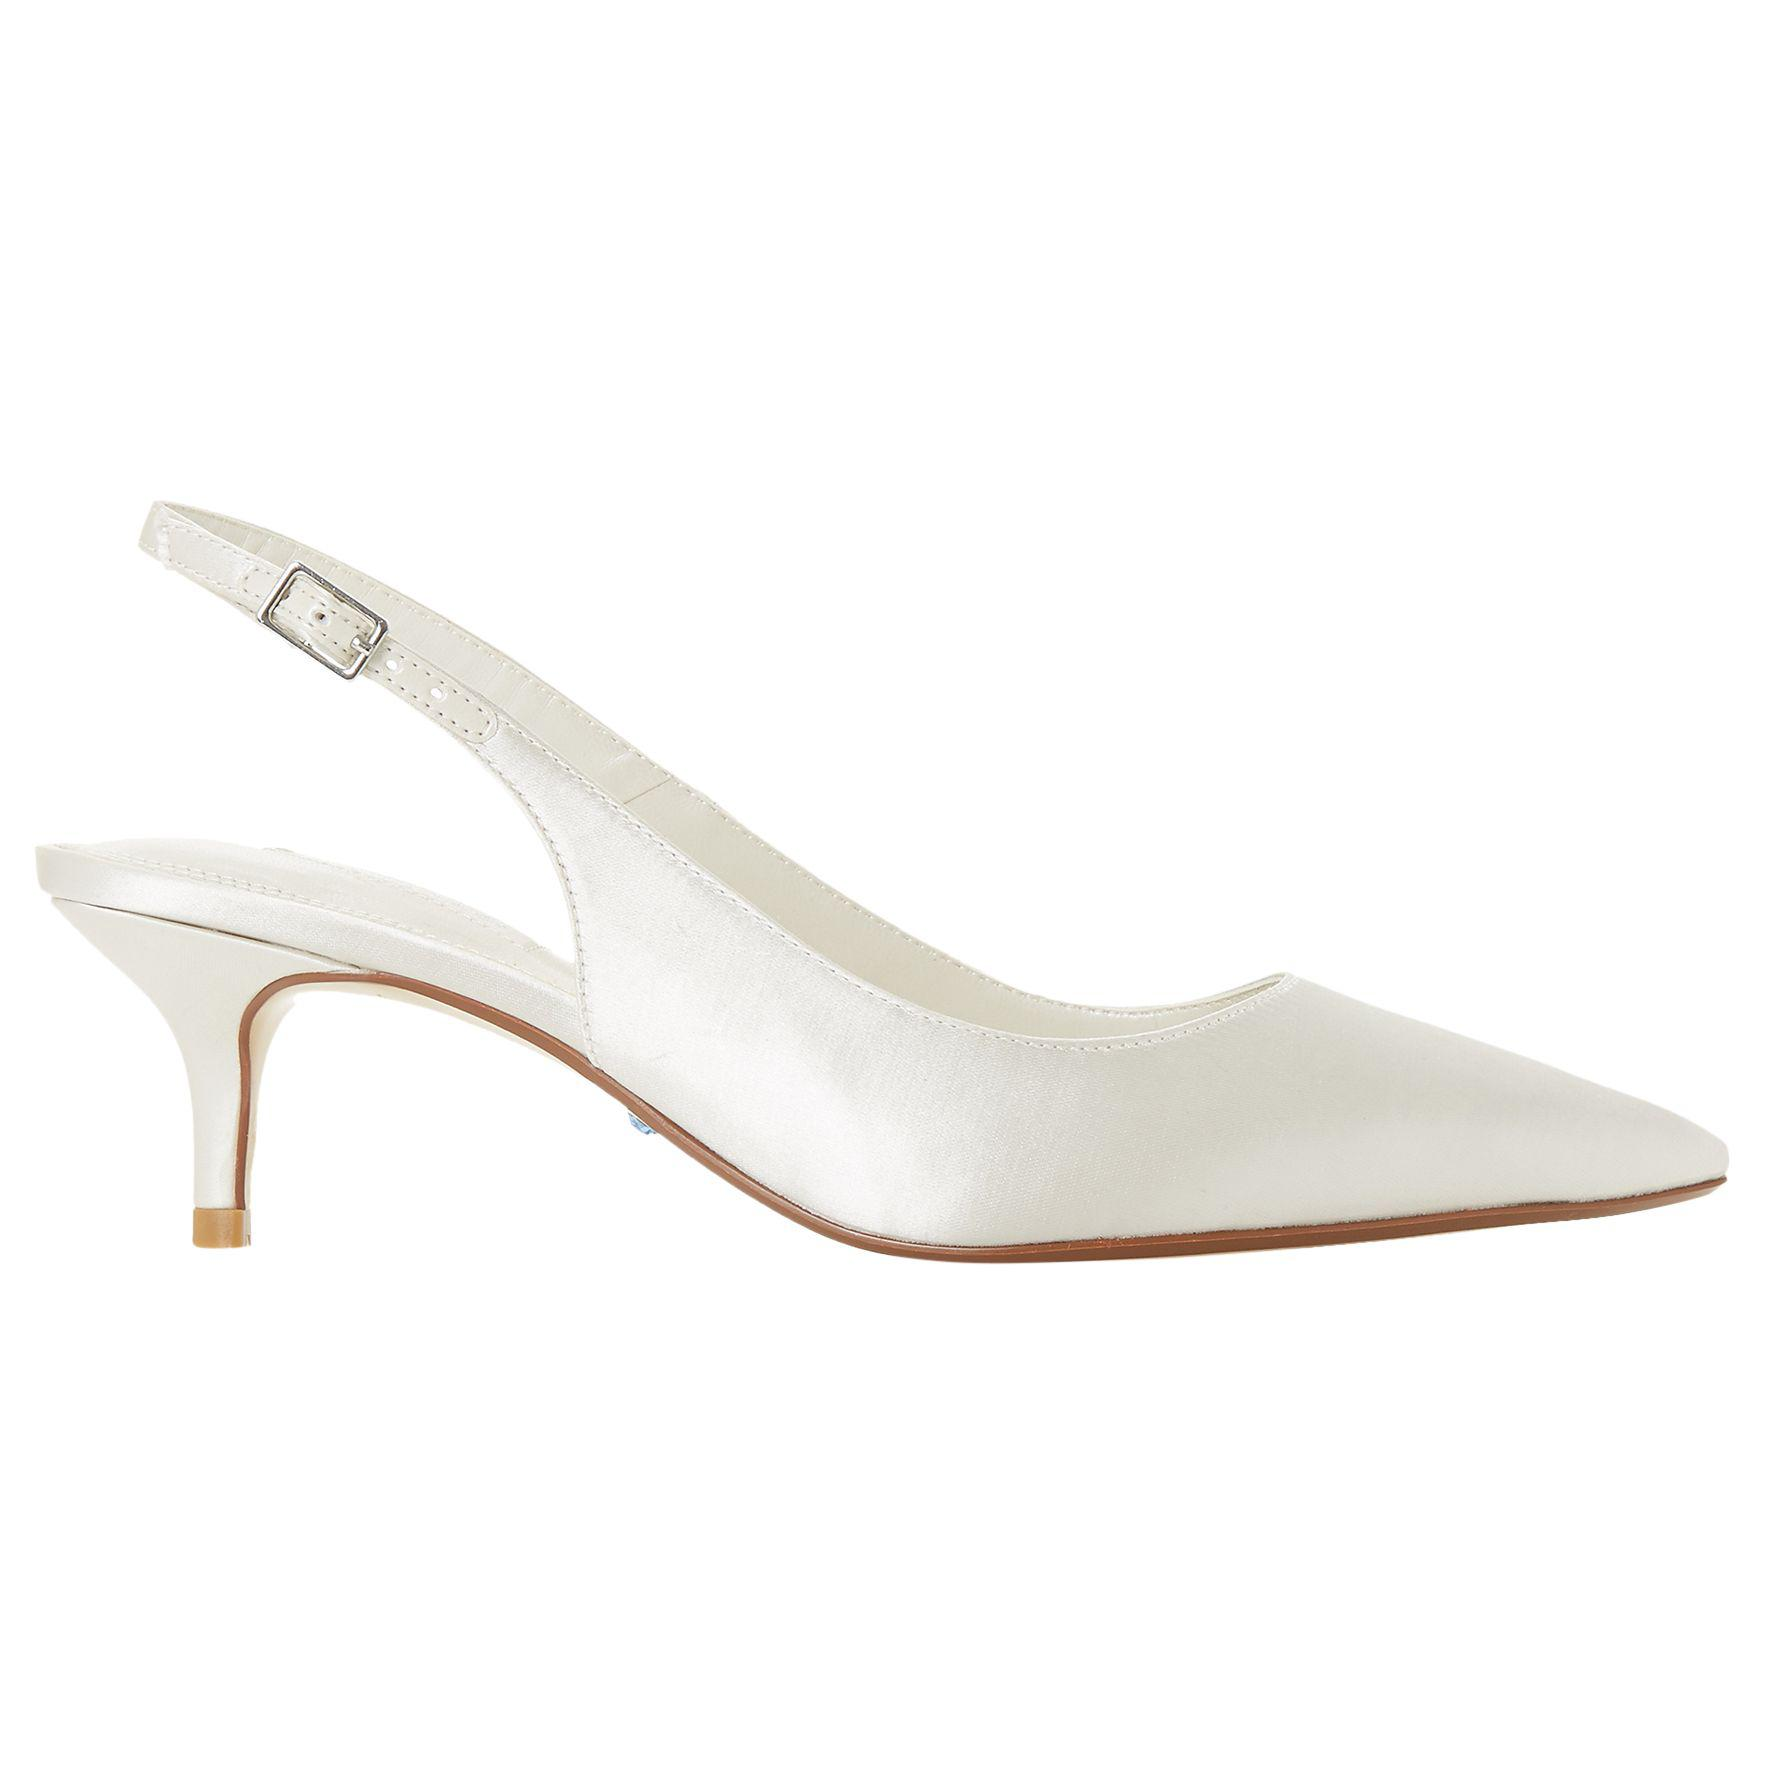 4ae2a83a52ef Dune Bridal Casandraa Kitten Heel Slingback Court Shoes in White - Lyst